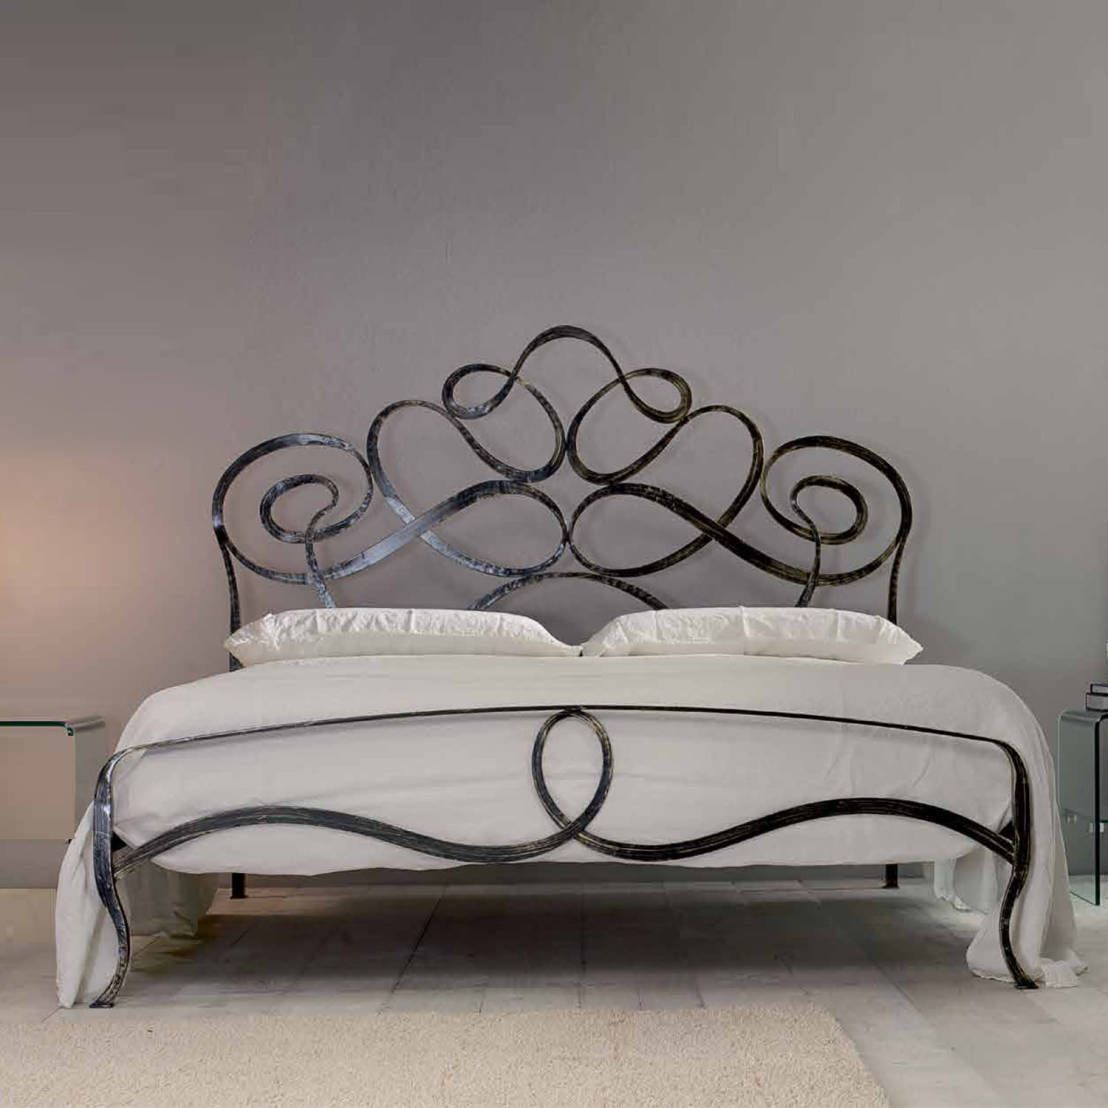 7 amazing iron decoration ideas wrought iron beds bed Decorative headboards for beds